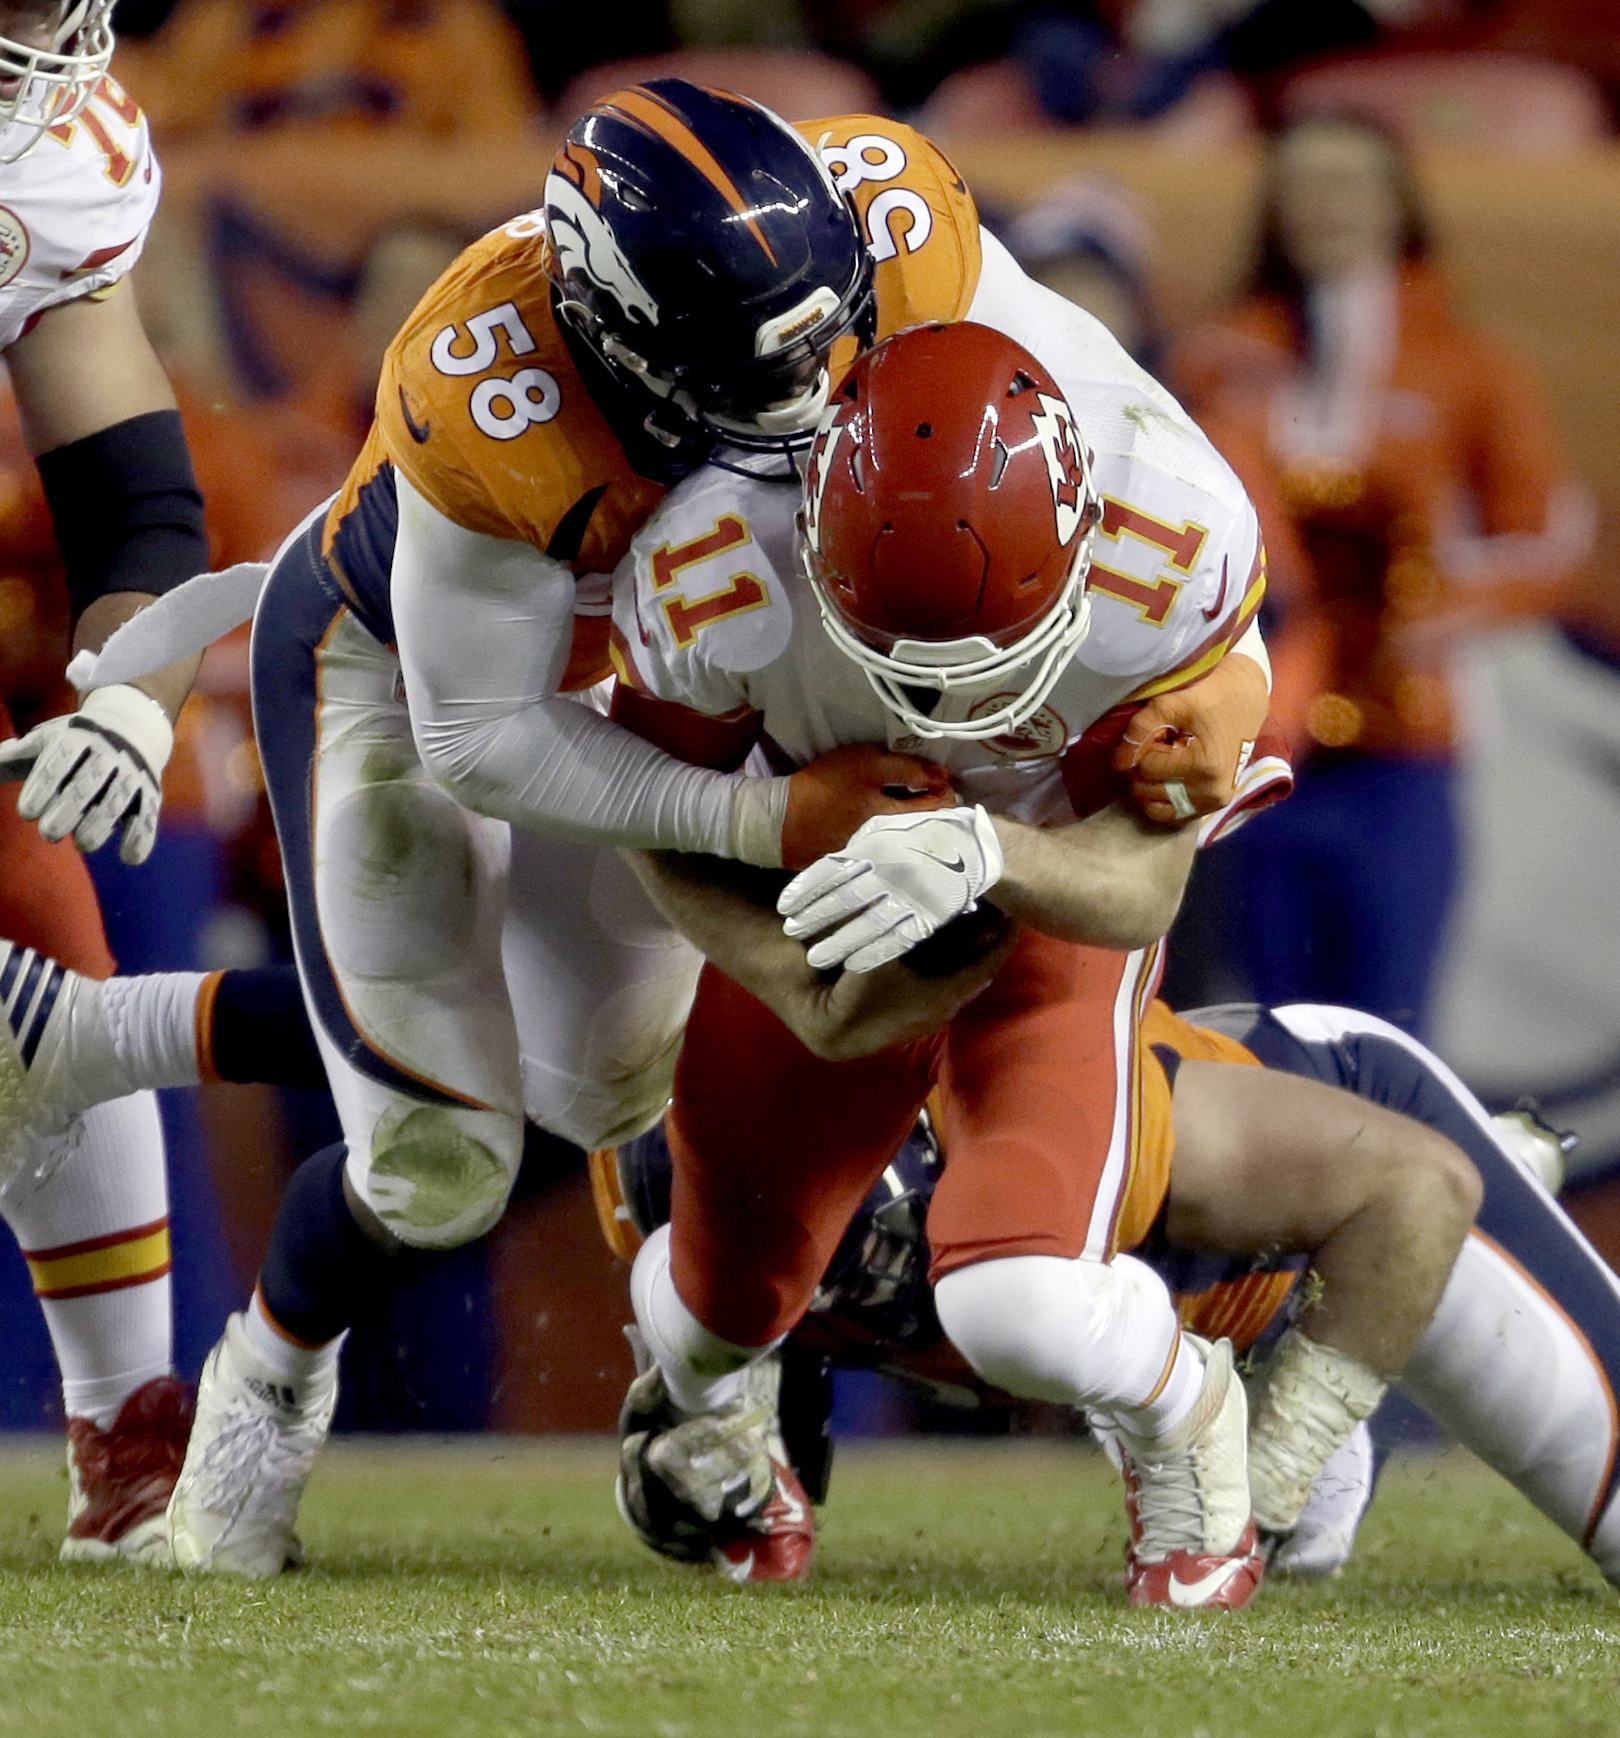 FILE - In a Sunday, Nov. 27, 2016 file photo, Kansas City Chiefs quarterback Alex Smith (11) is sacked by Denver Broncos outside linebacker Von Miller (58) during the first half of an NFL football game, in Denver. Spoiler is an unfamiliar role for Von Mil